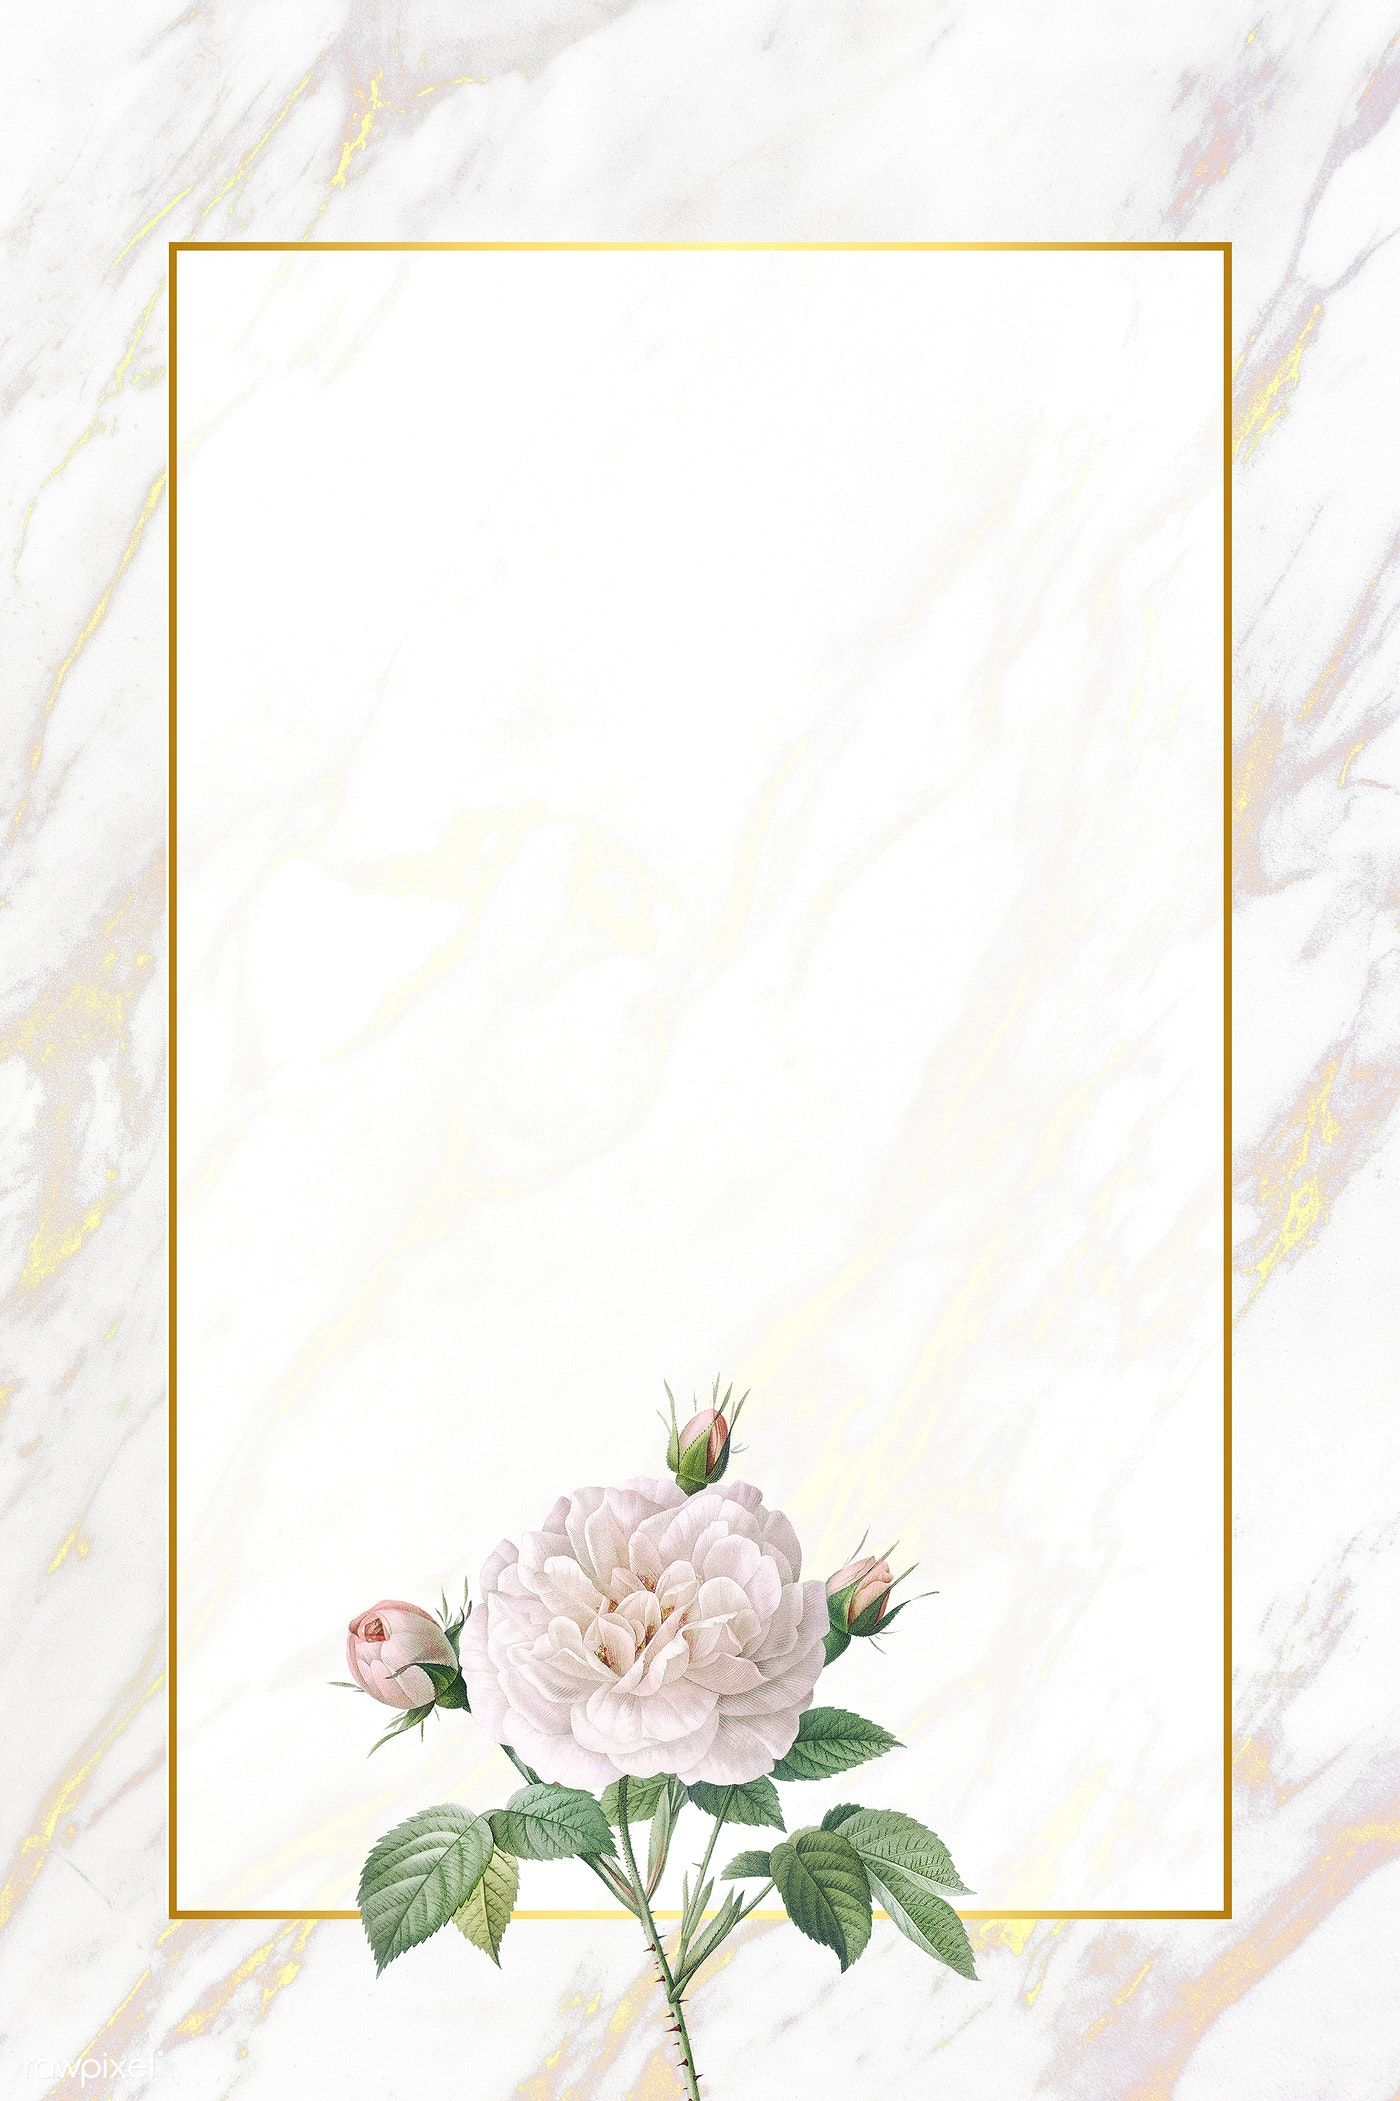 Download Premium Illustration Of White Flower Element On Marble